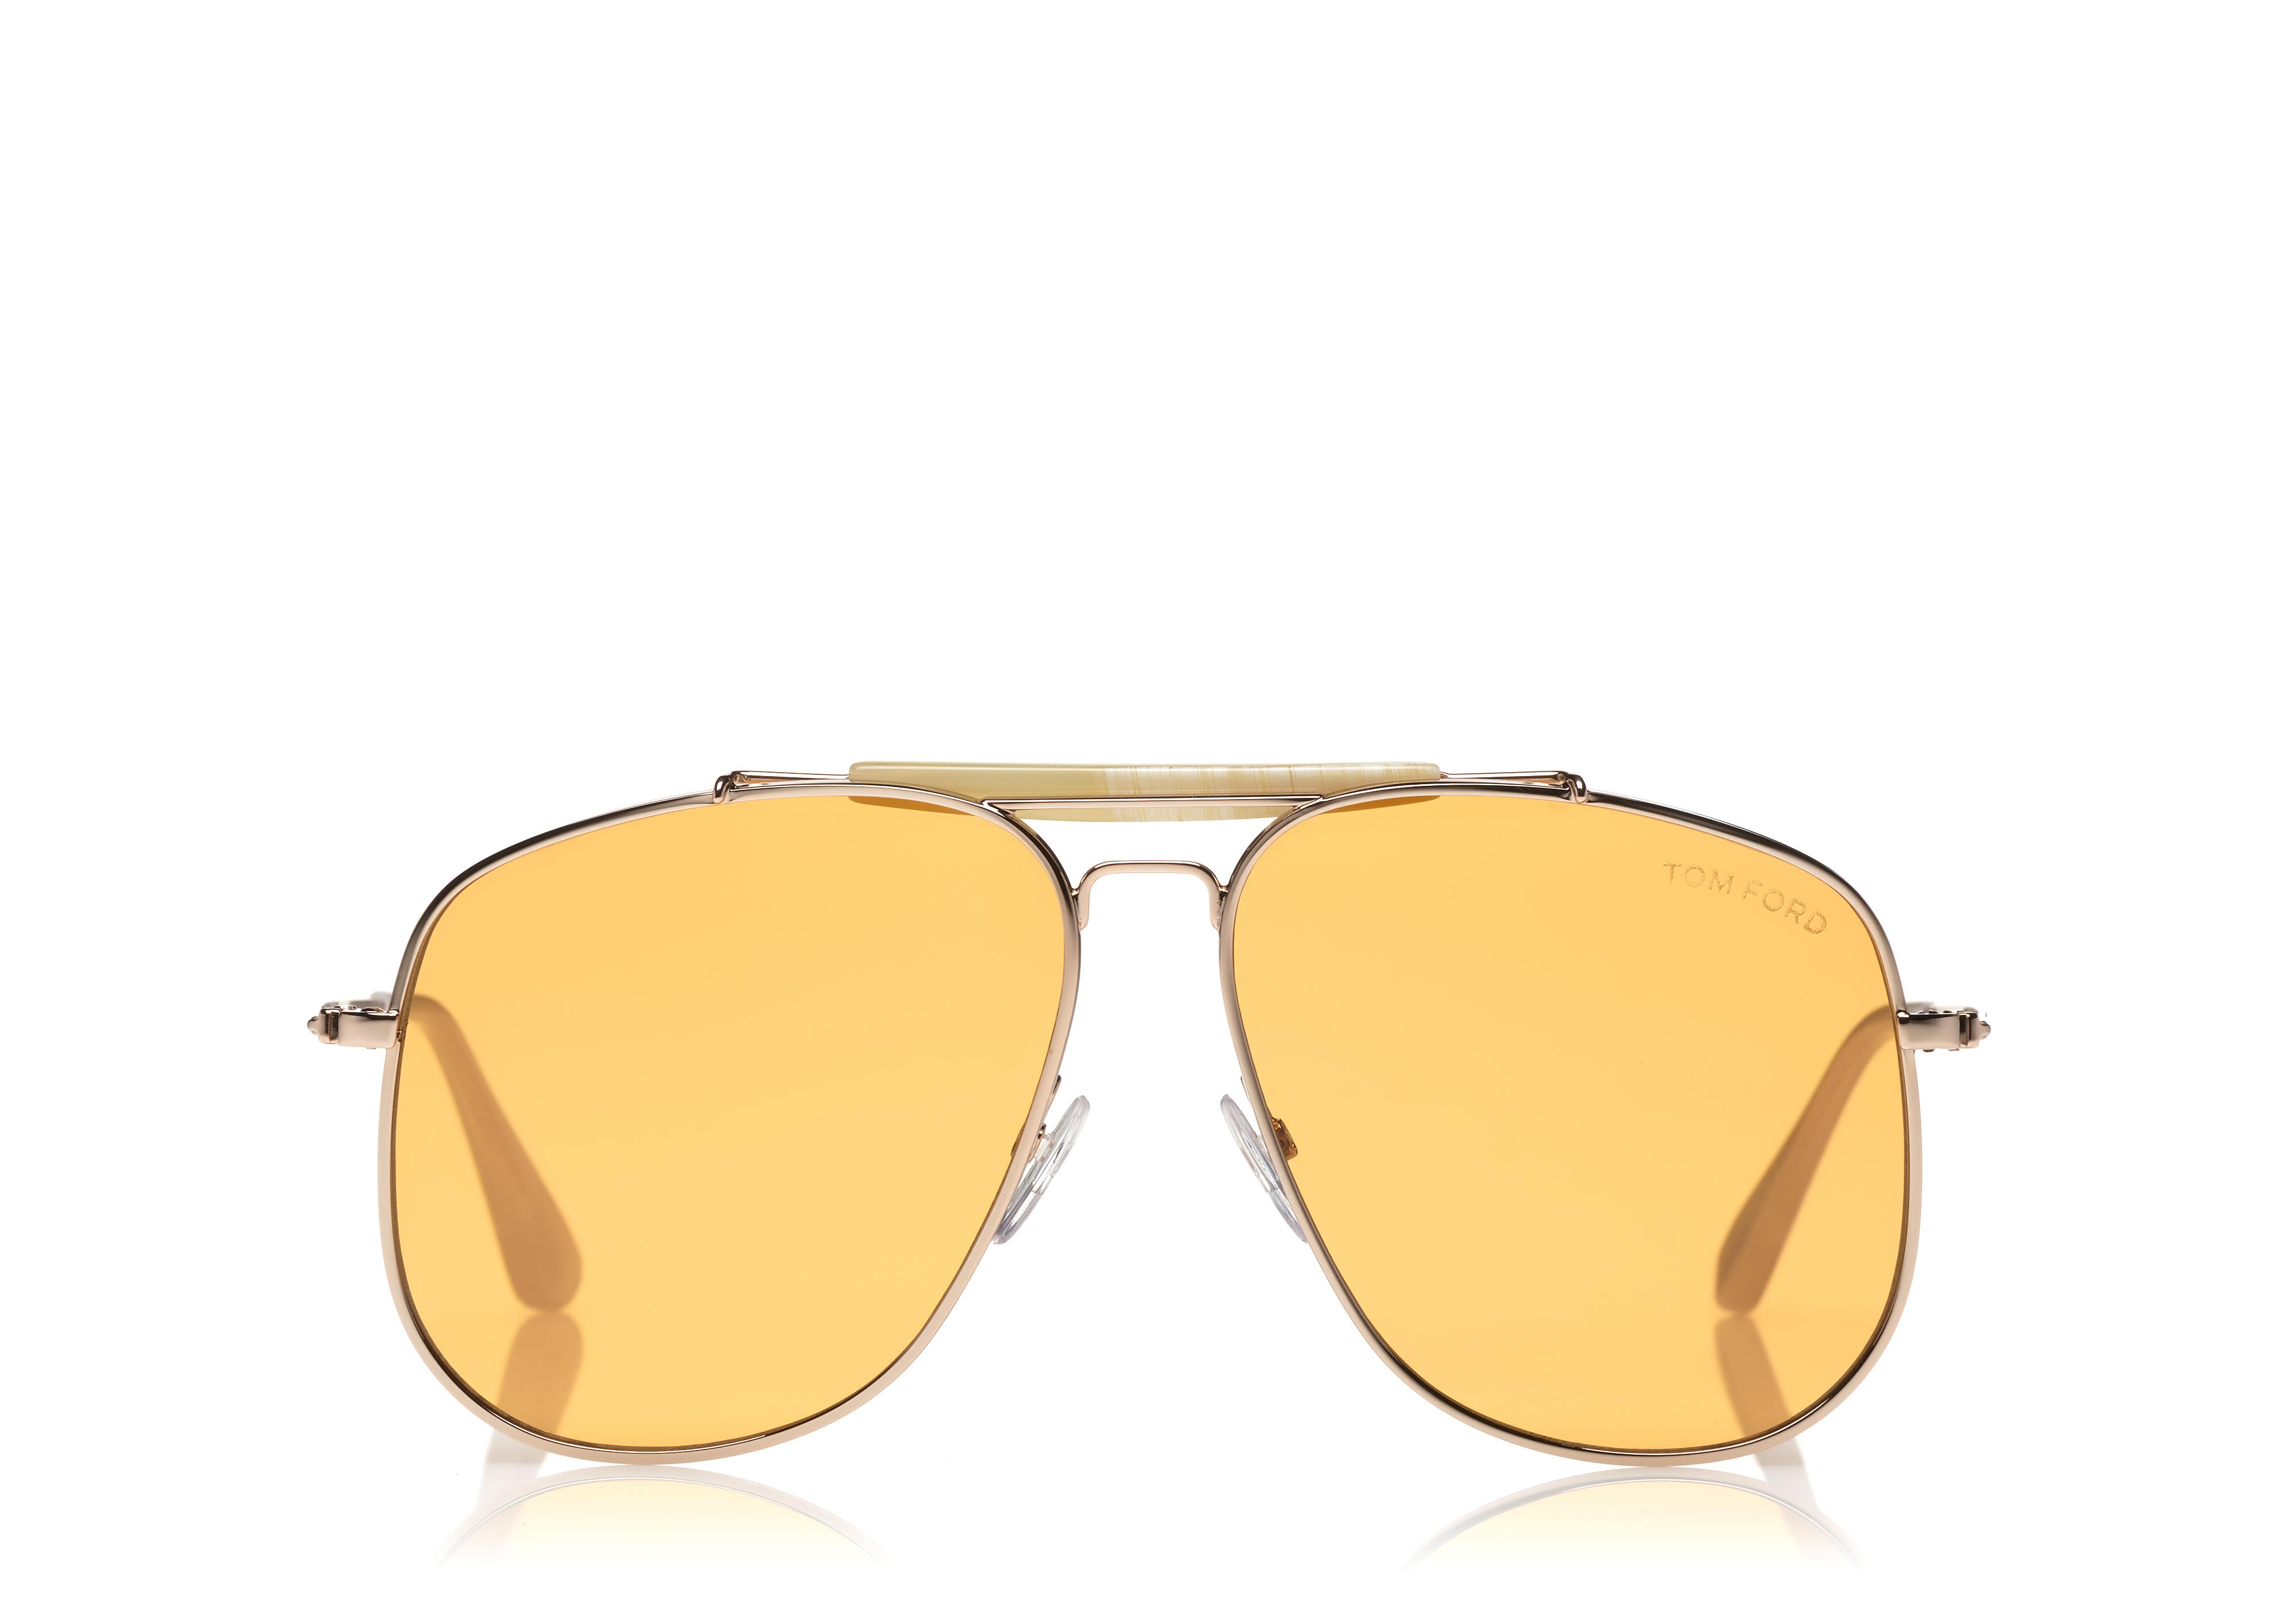 CONNOR SUNGLASSES A thumbnail